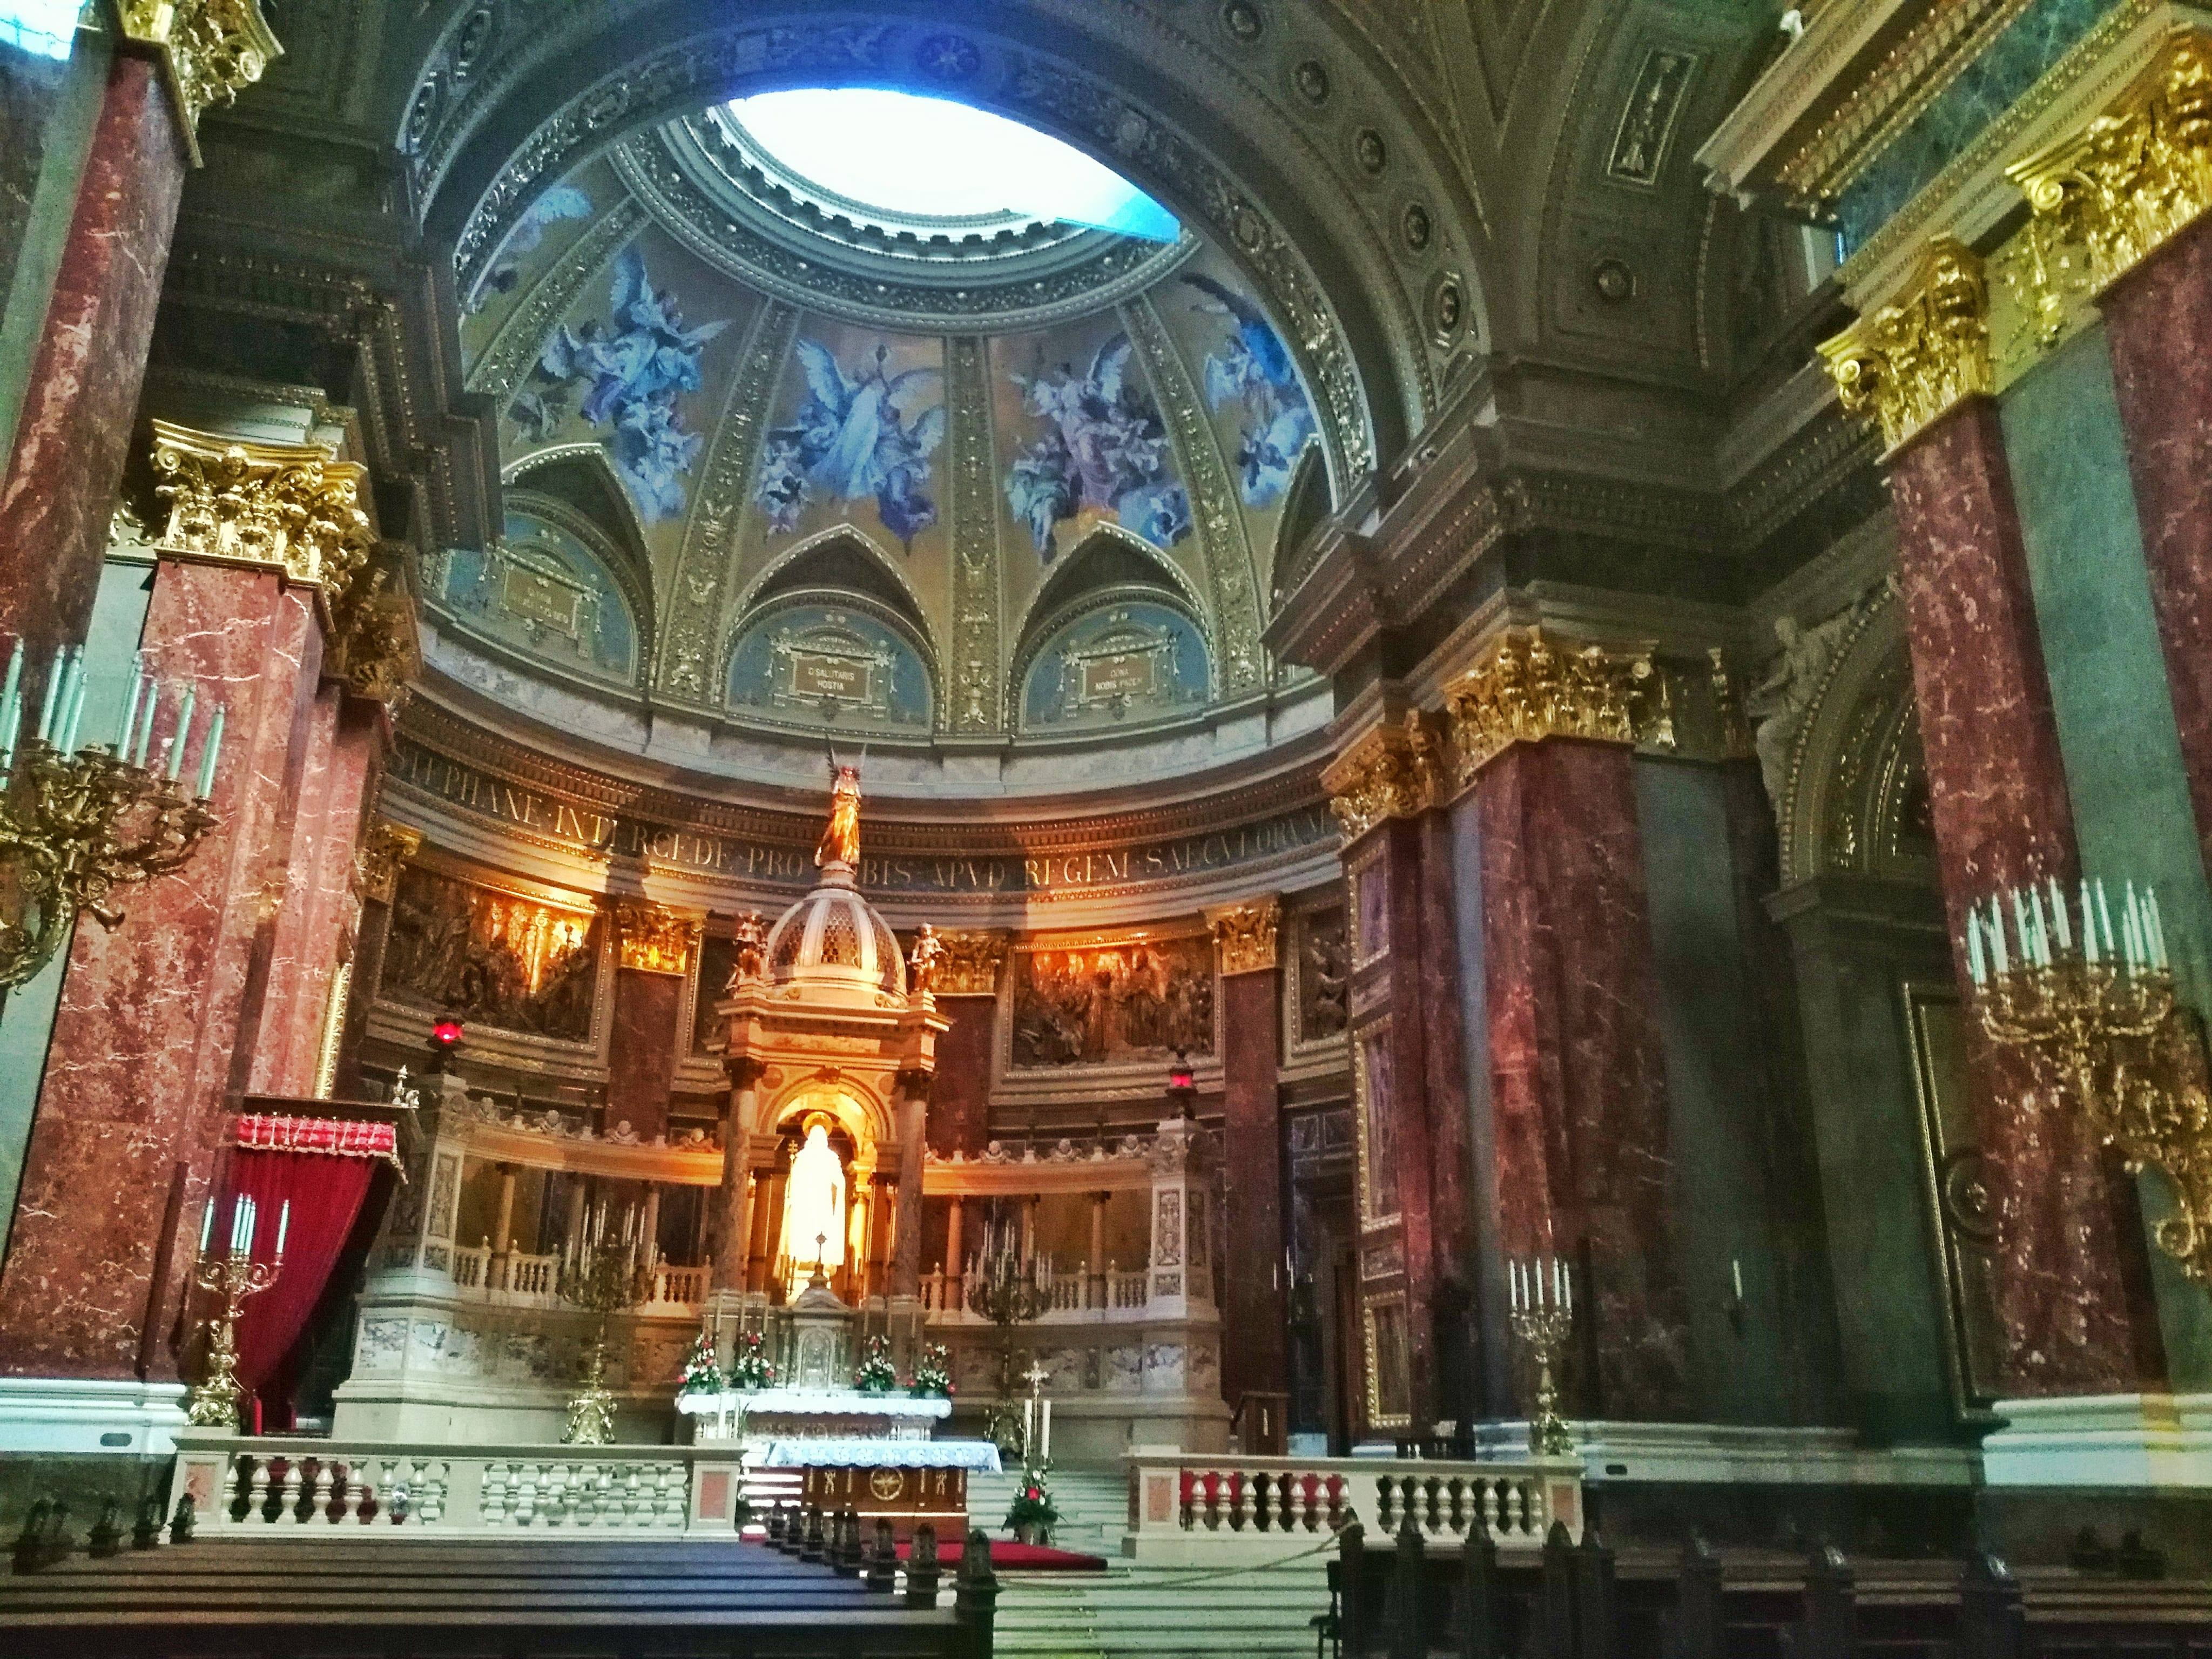 top 5 things to see in Budapest - Basilica interior